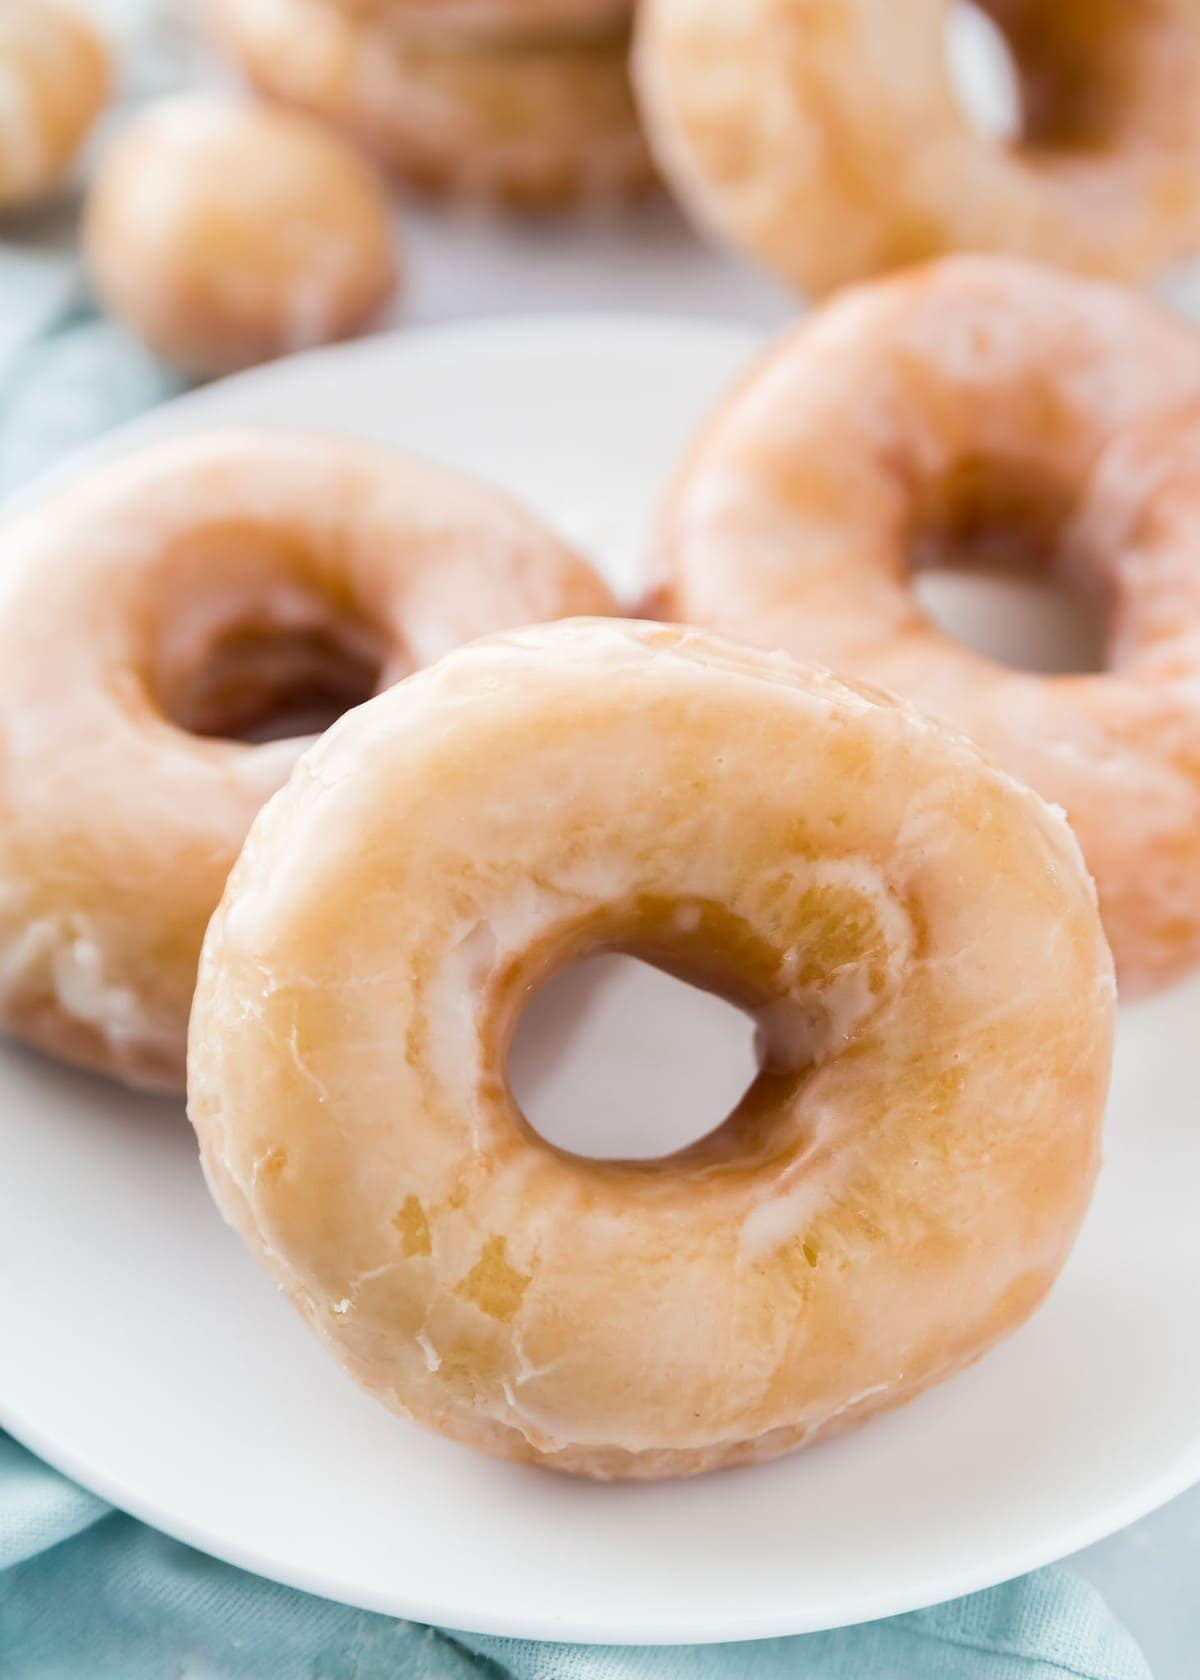 Homemade Donuts recipe on white plate